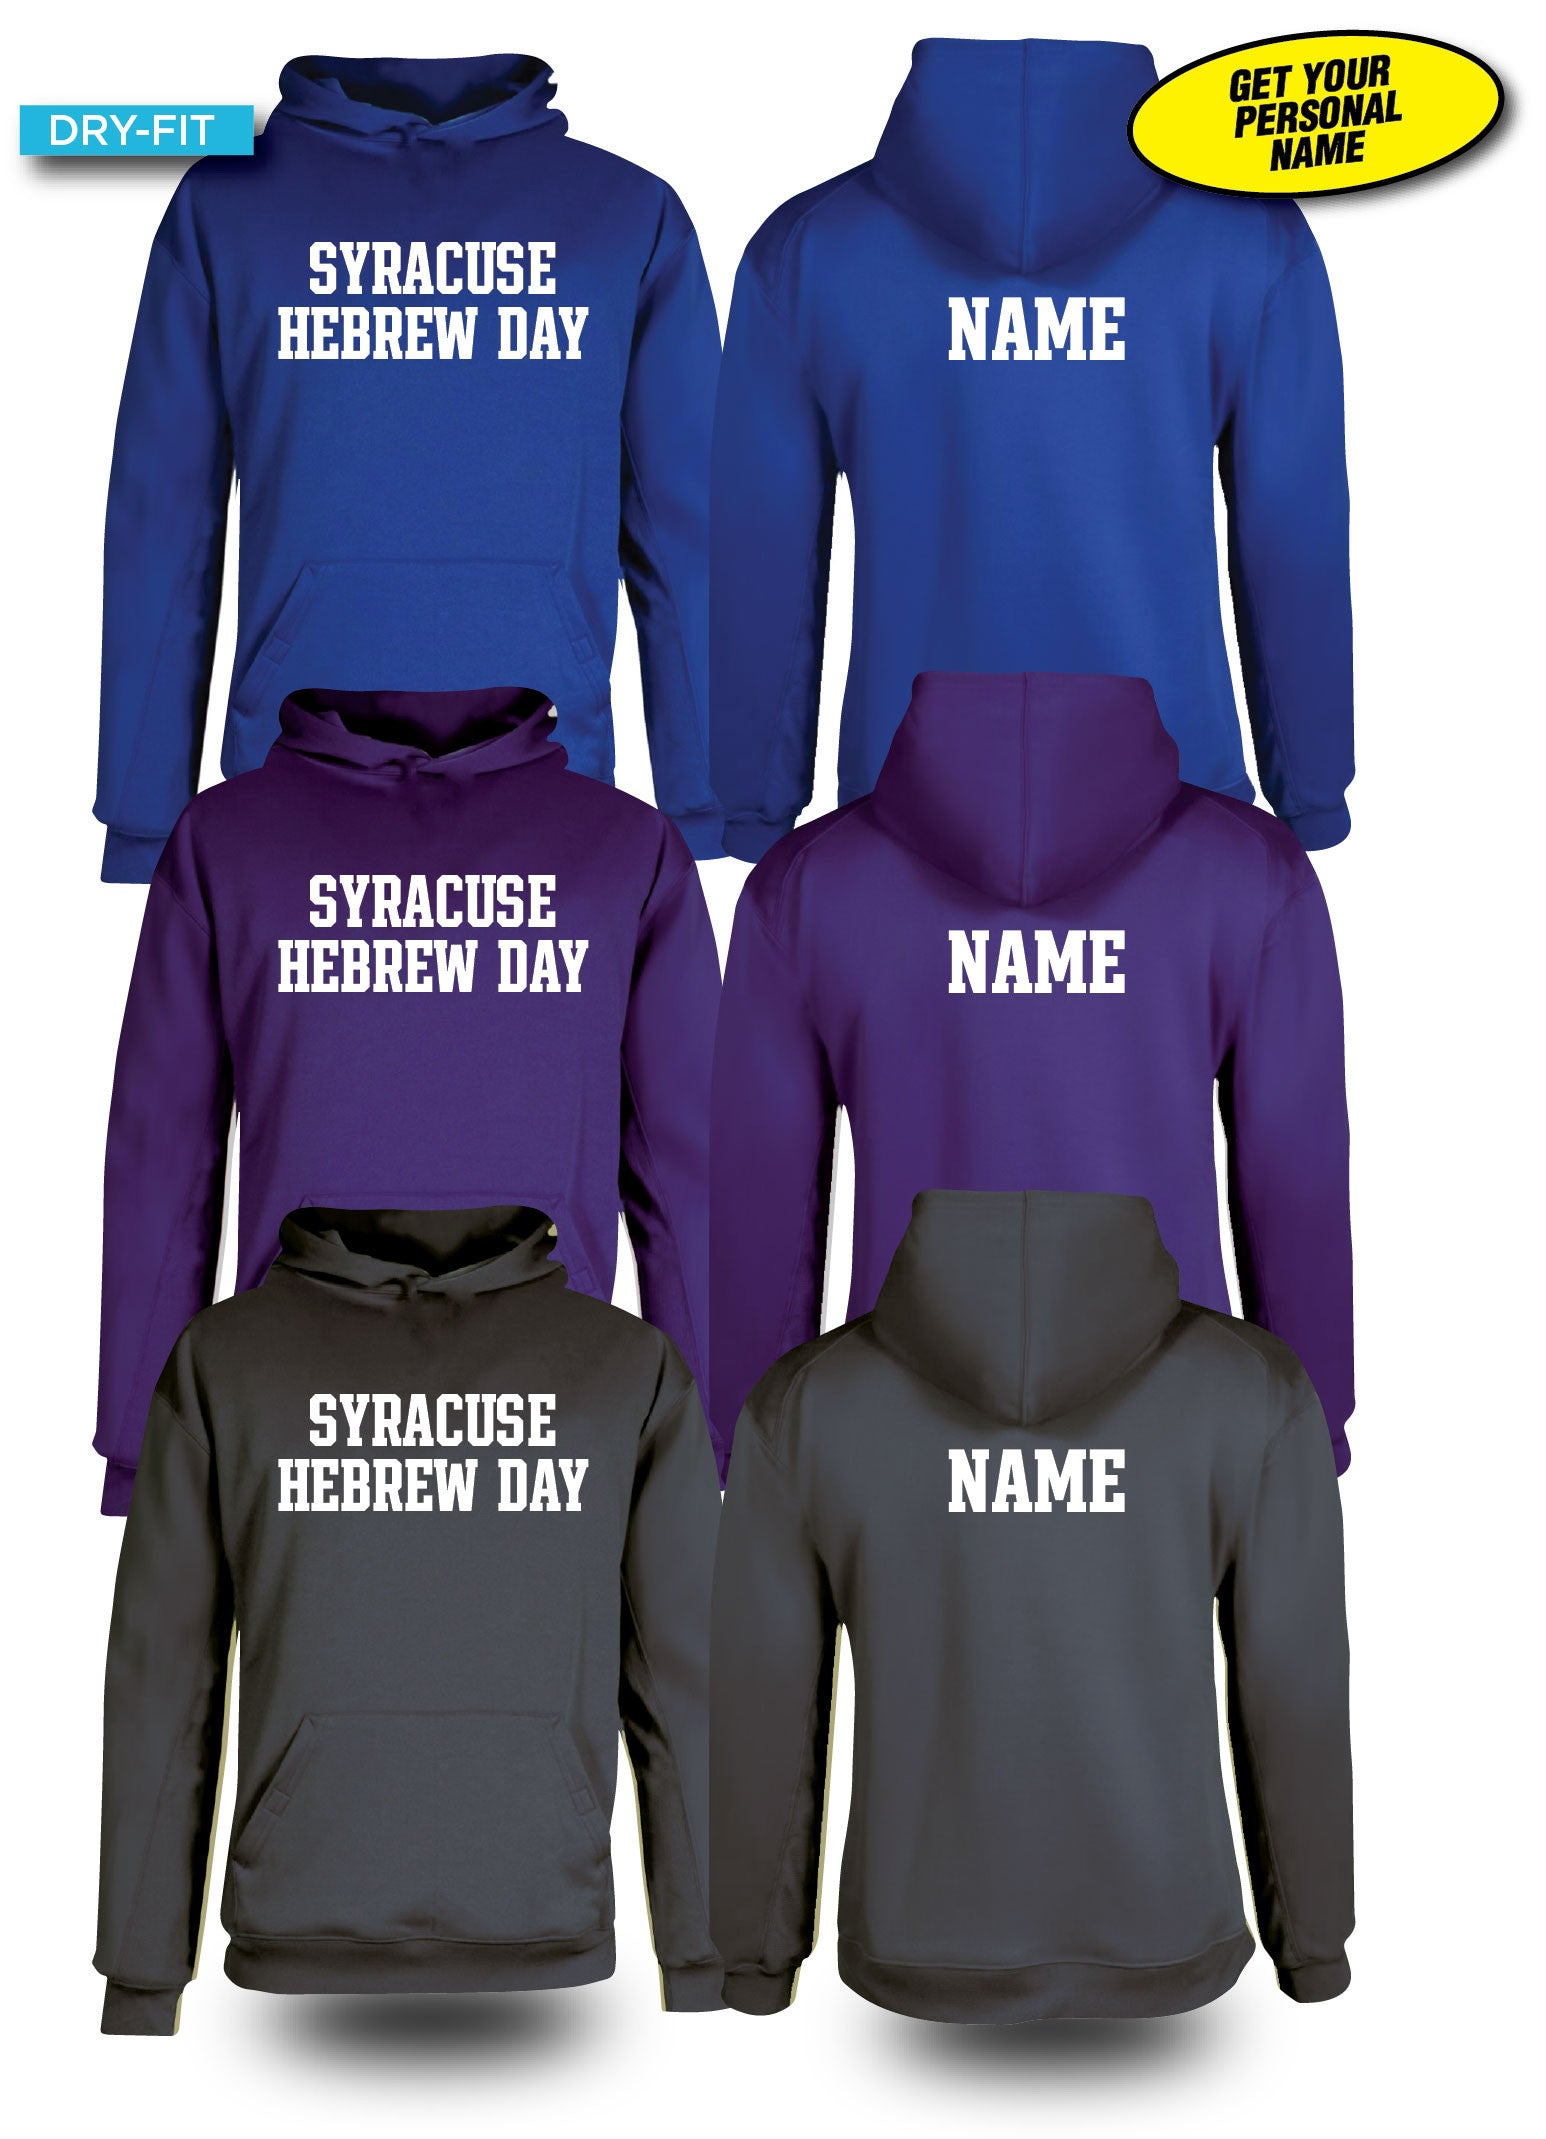 DRY-FIT Hoodies - PERSONAL NAME